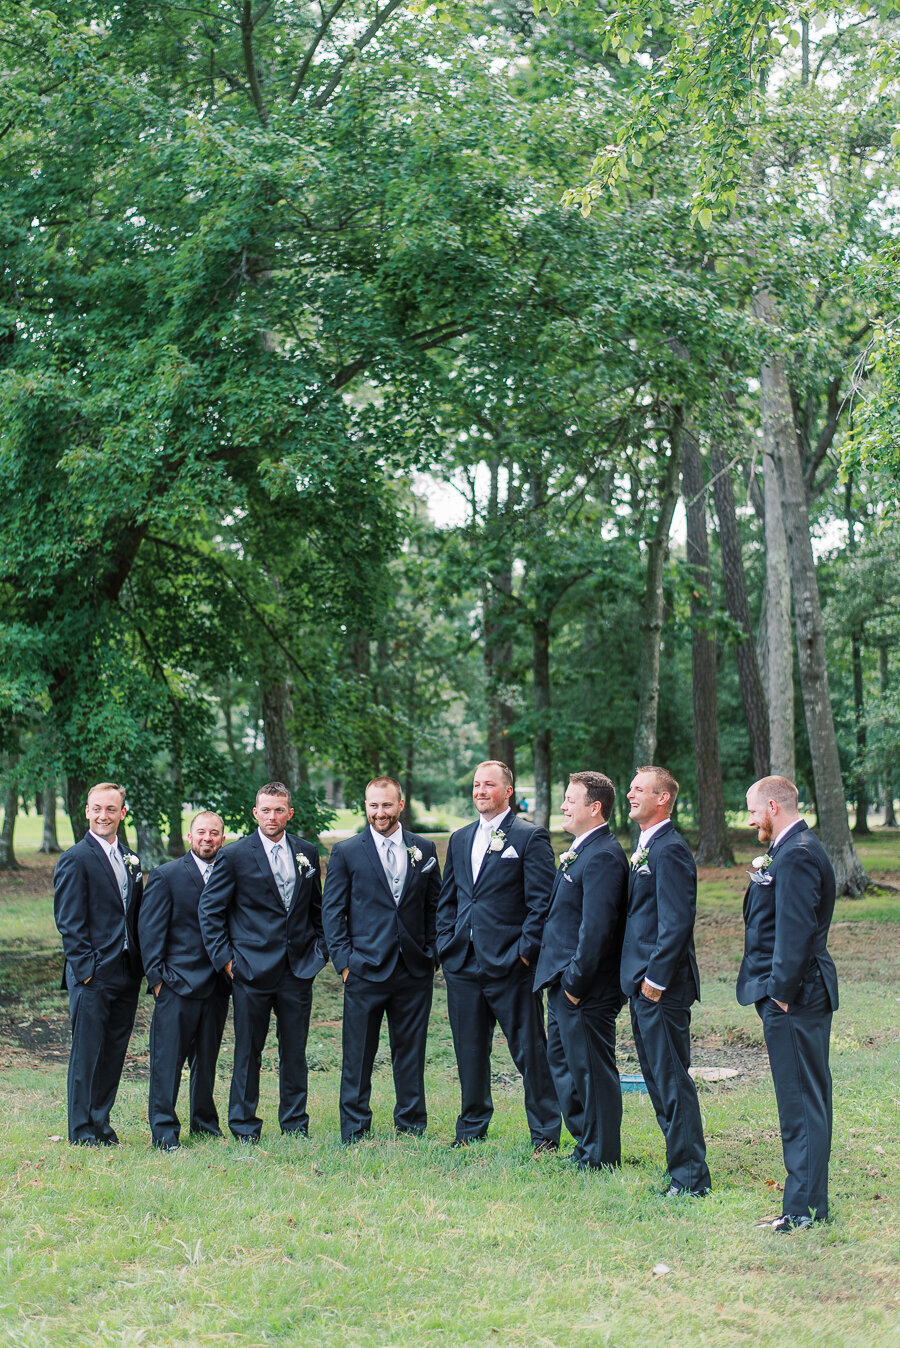 Prospect_Bay_Country_Club_Wedding_Maryland_Megan_Harris_Photography-5